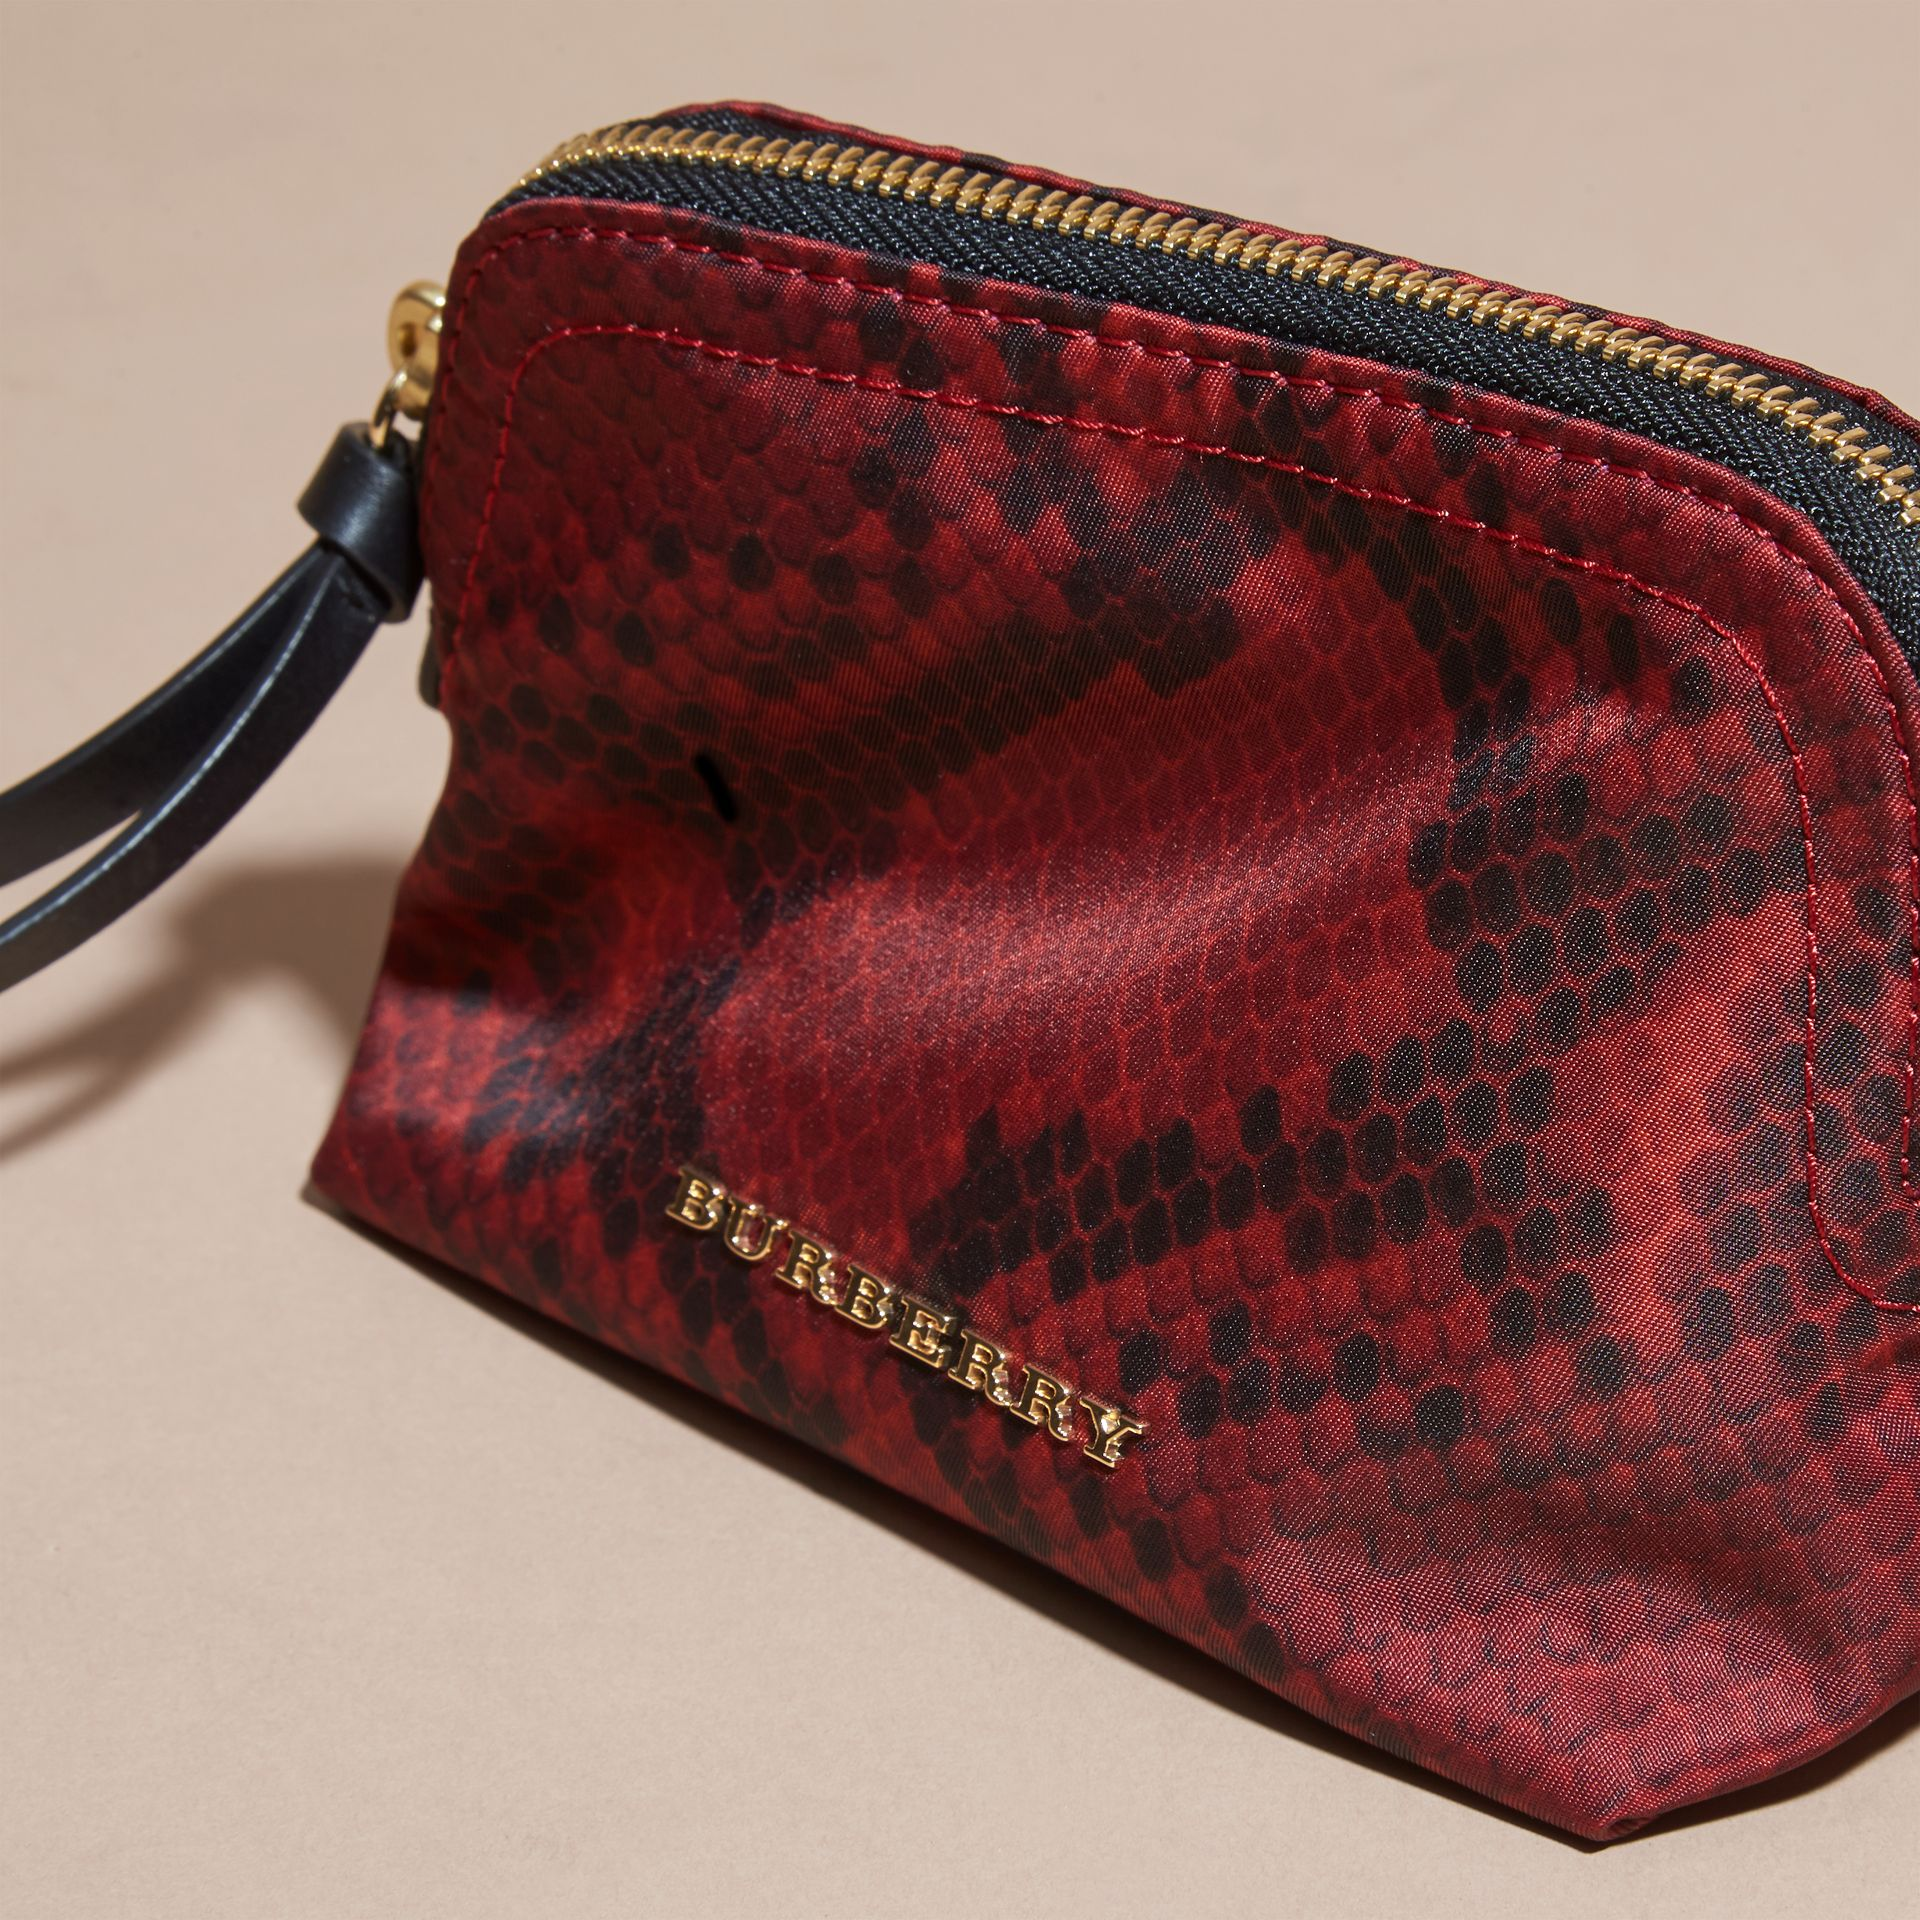 Rouge bourgogne Pochette zippée en nylon technique à imprimé python Rouge Bourgogne - photo de la galerie 6